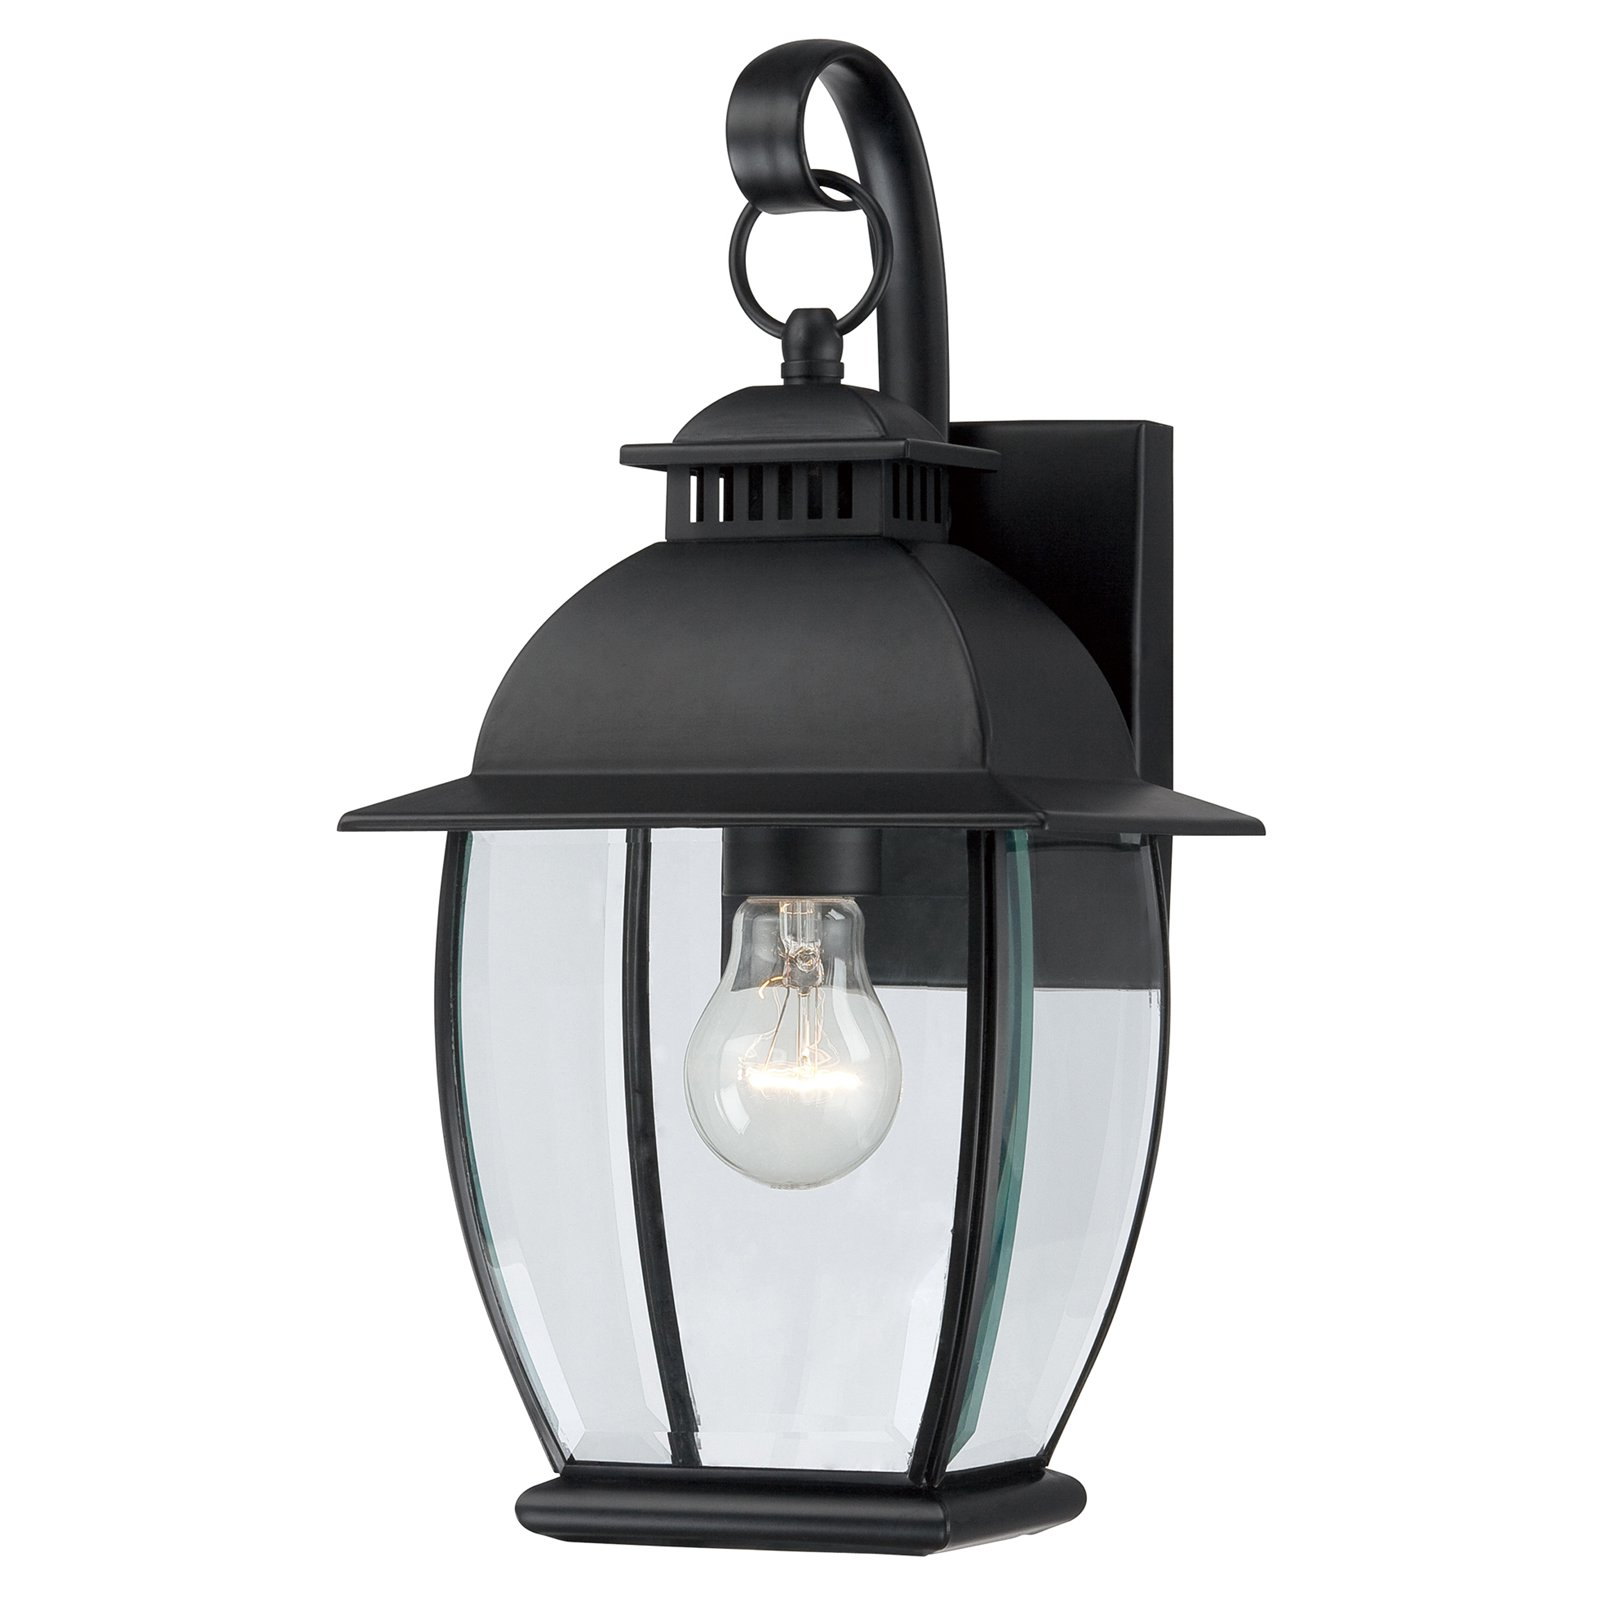 Quoizel Bain BAN84 Outdoor Fixture by Quoizel